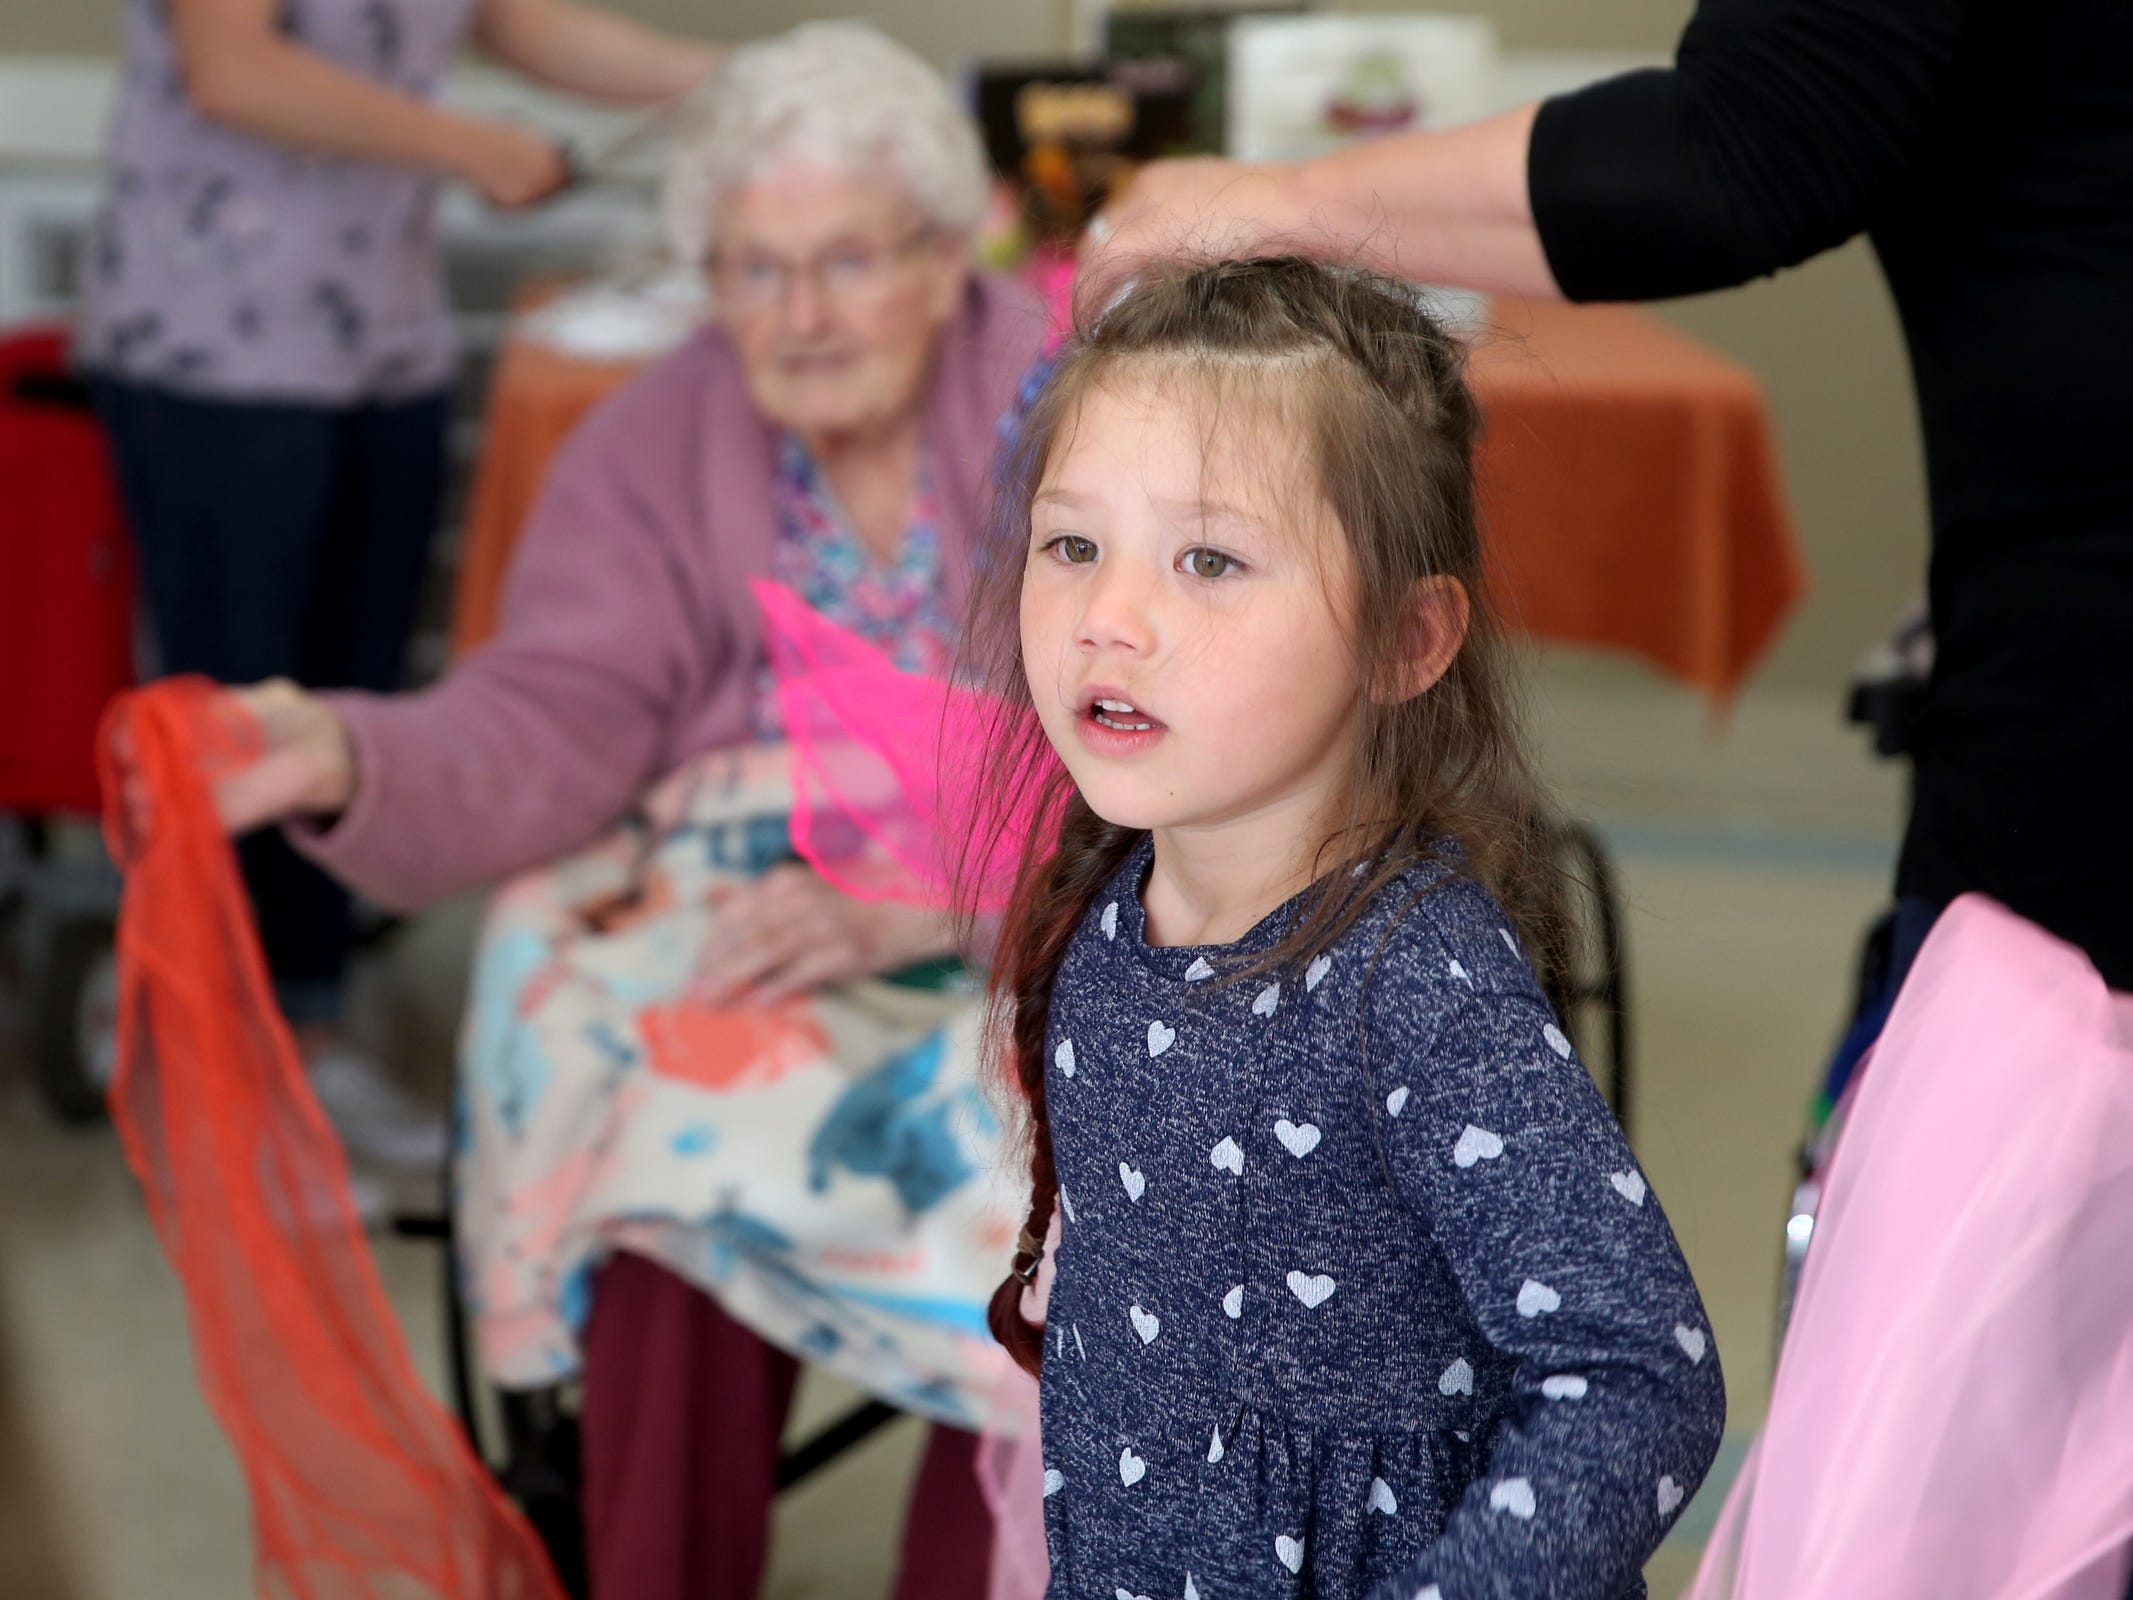 "Eva Pineda, 4, dances with scarves during a visit by the Friendship Brigade, a group that focuses on intergenerational programming, at Avamere Transitional Care at Sunnyside in Salem on May 6, 2019. Once a week, ""Storytime at Sunnyside"" brings preschoolers to the seniors for reading, singing, dancing and other playtime activities."